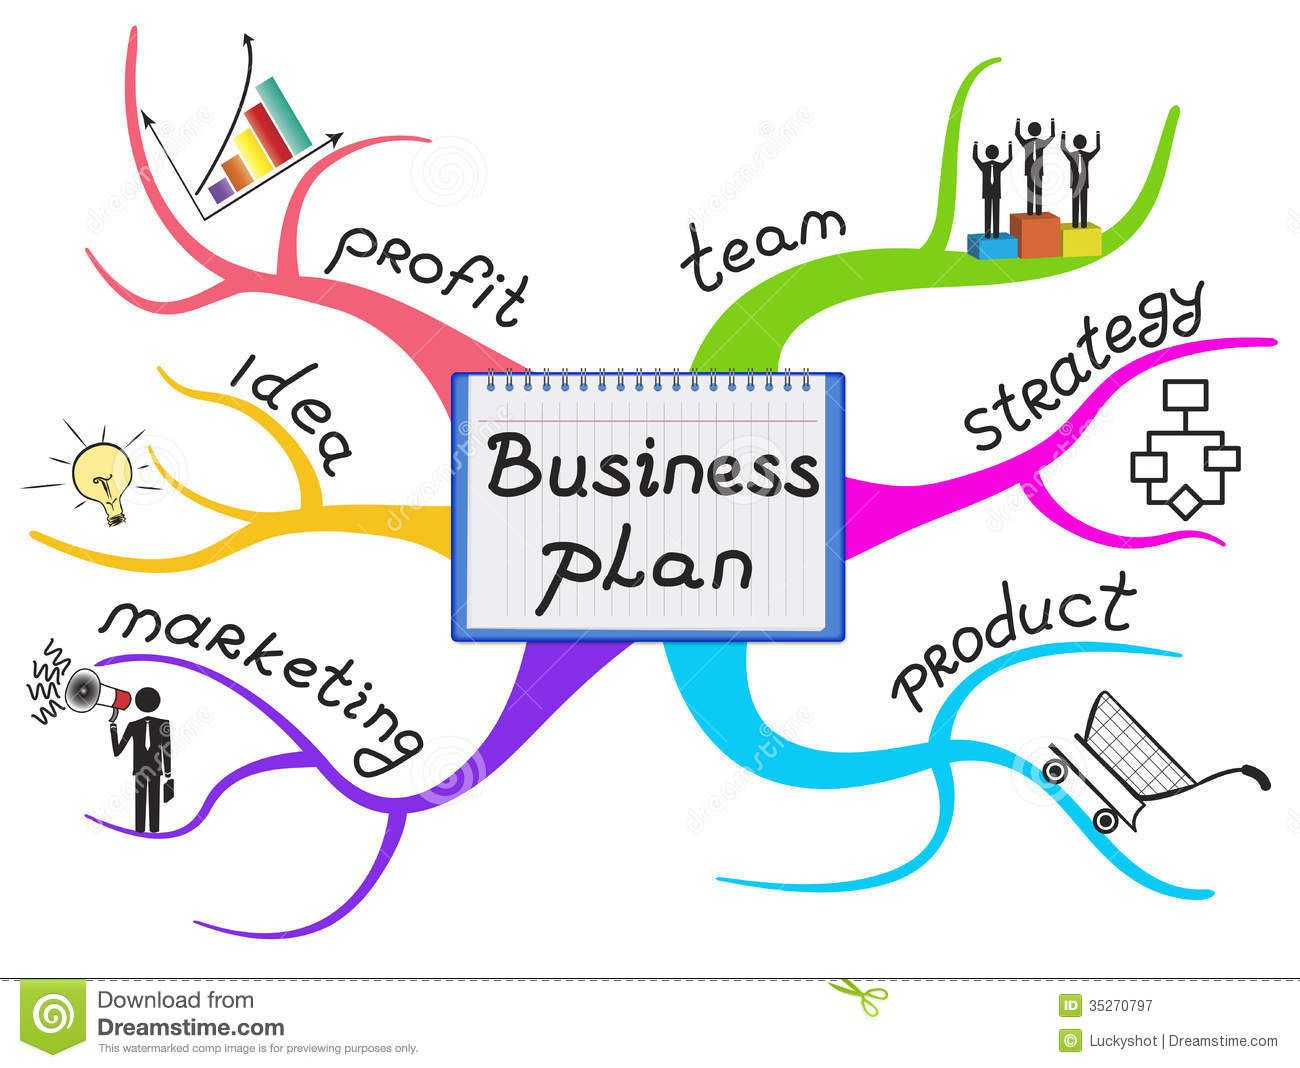 business plan mind map template Google Search Business